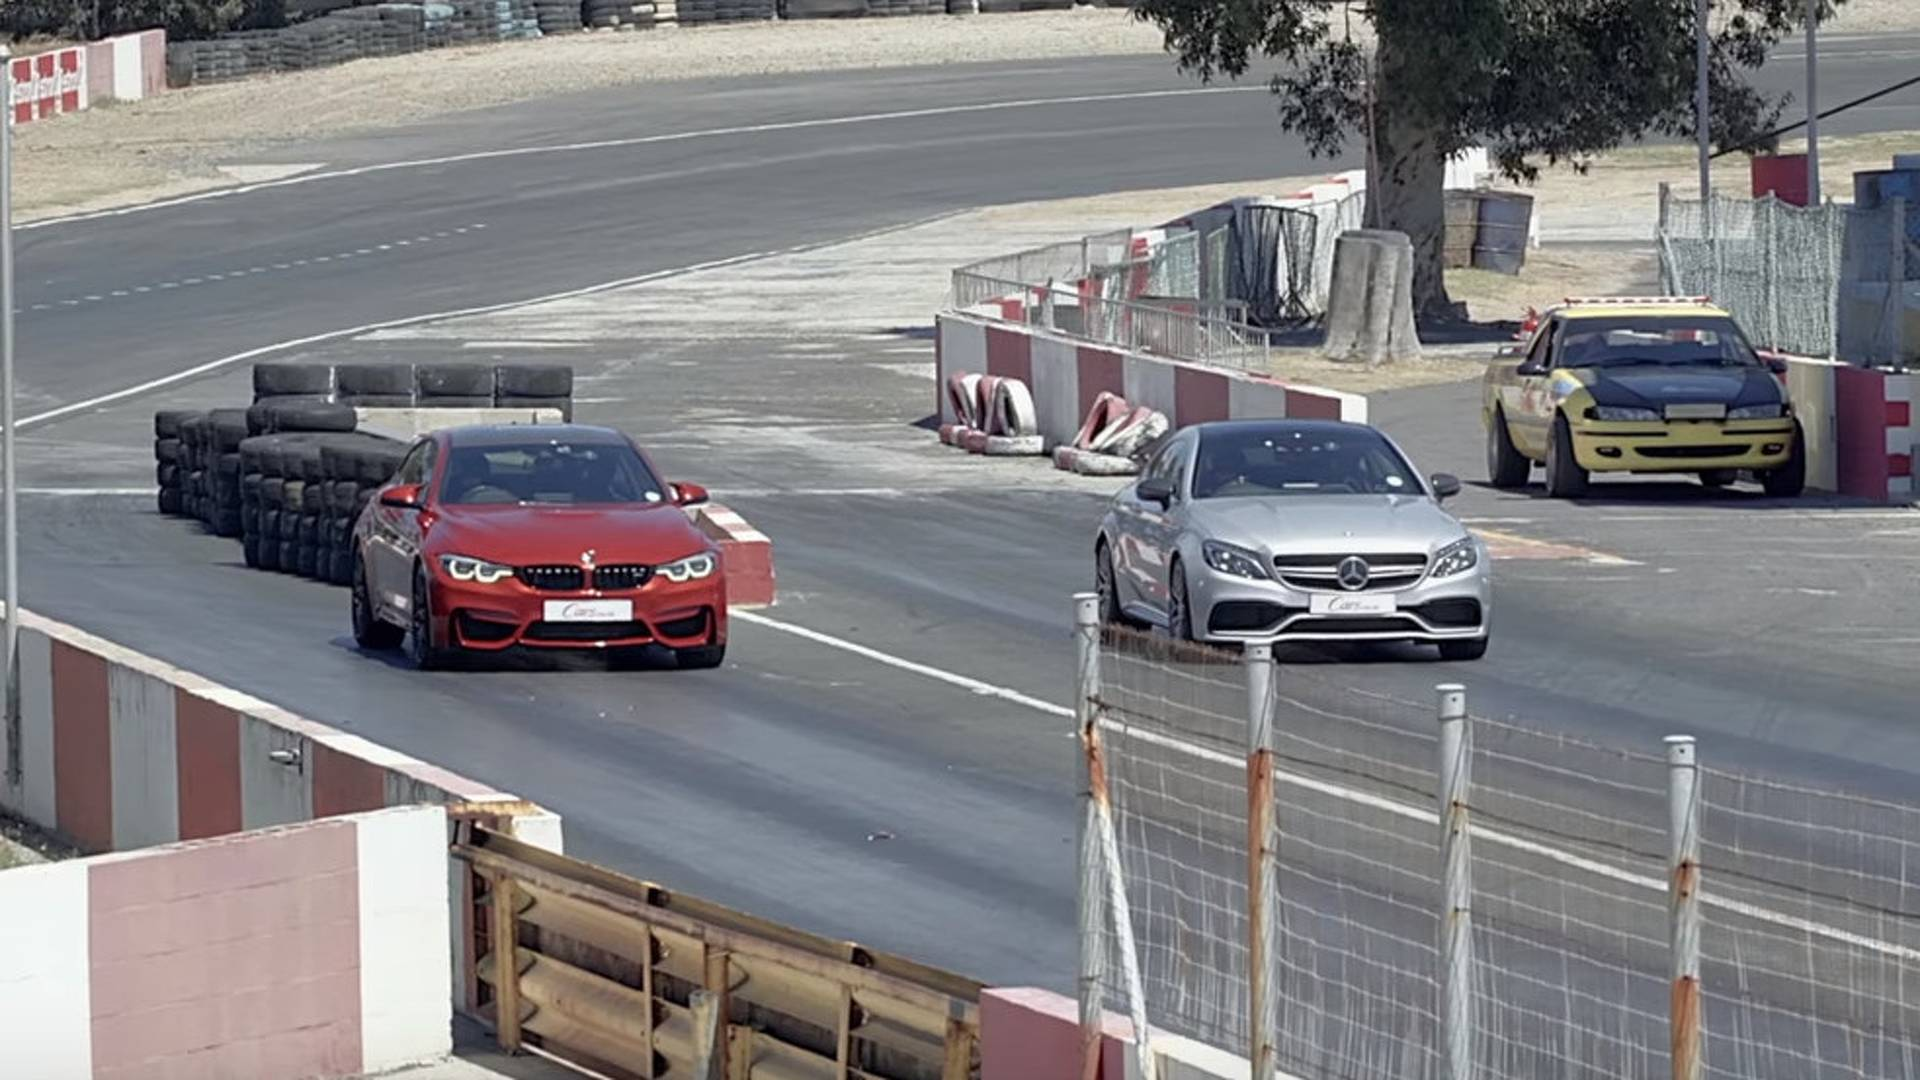 M4 Competition Drag Races Amg C63 S Coupe Germany Wins